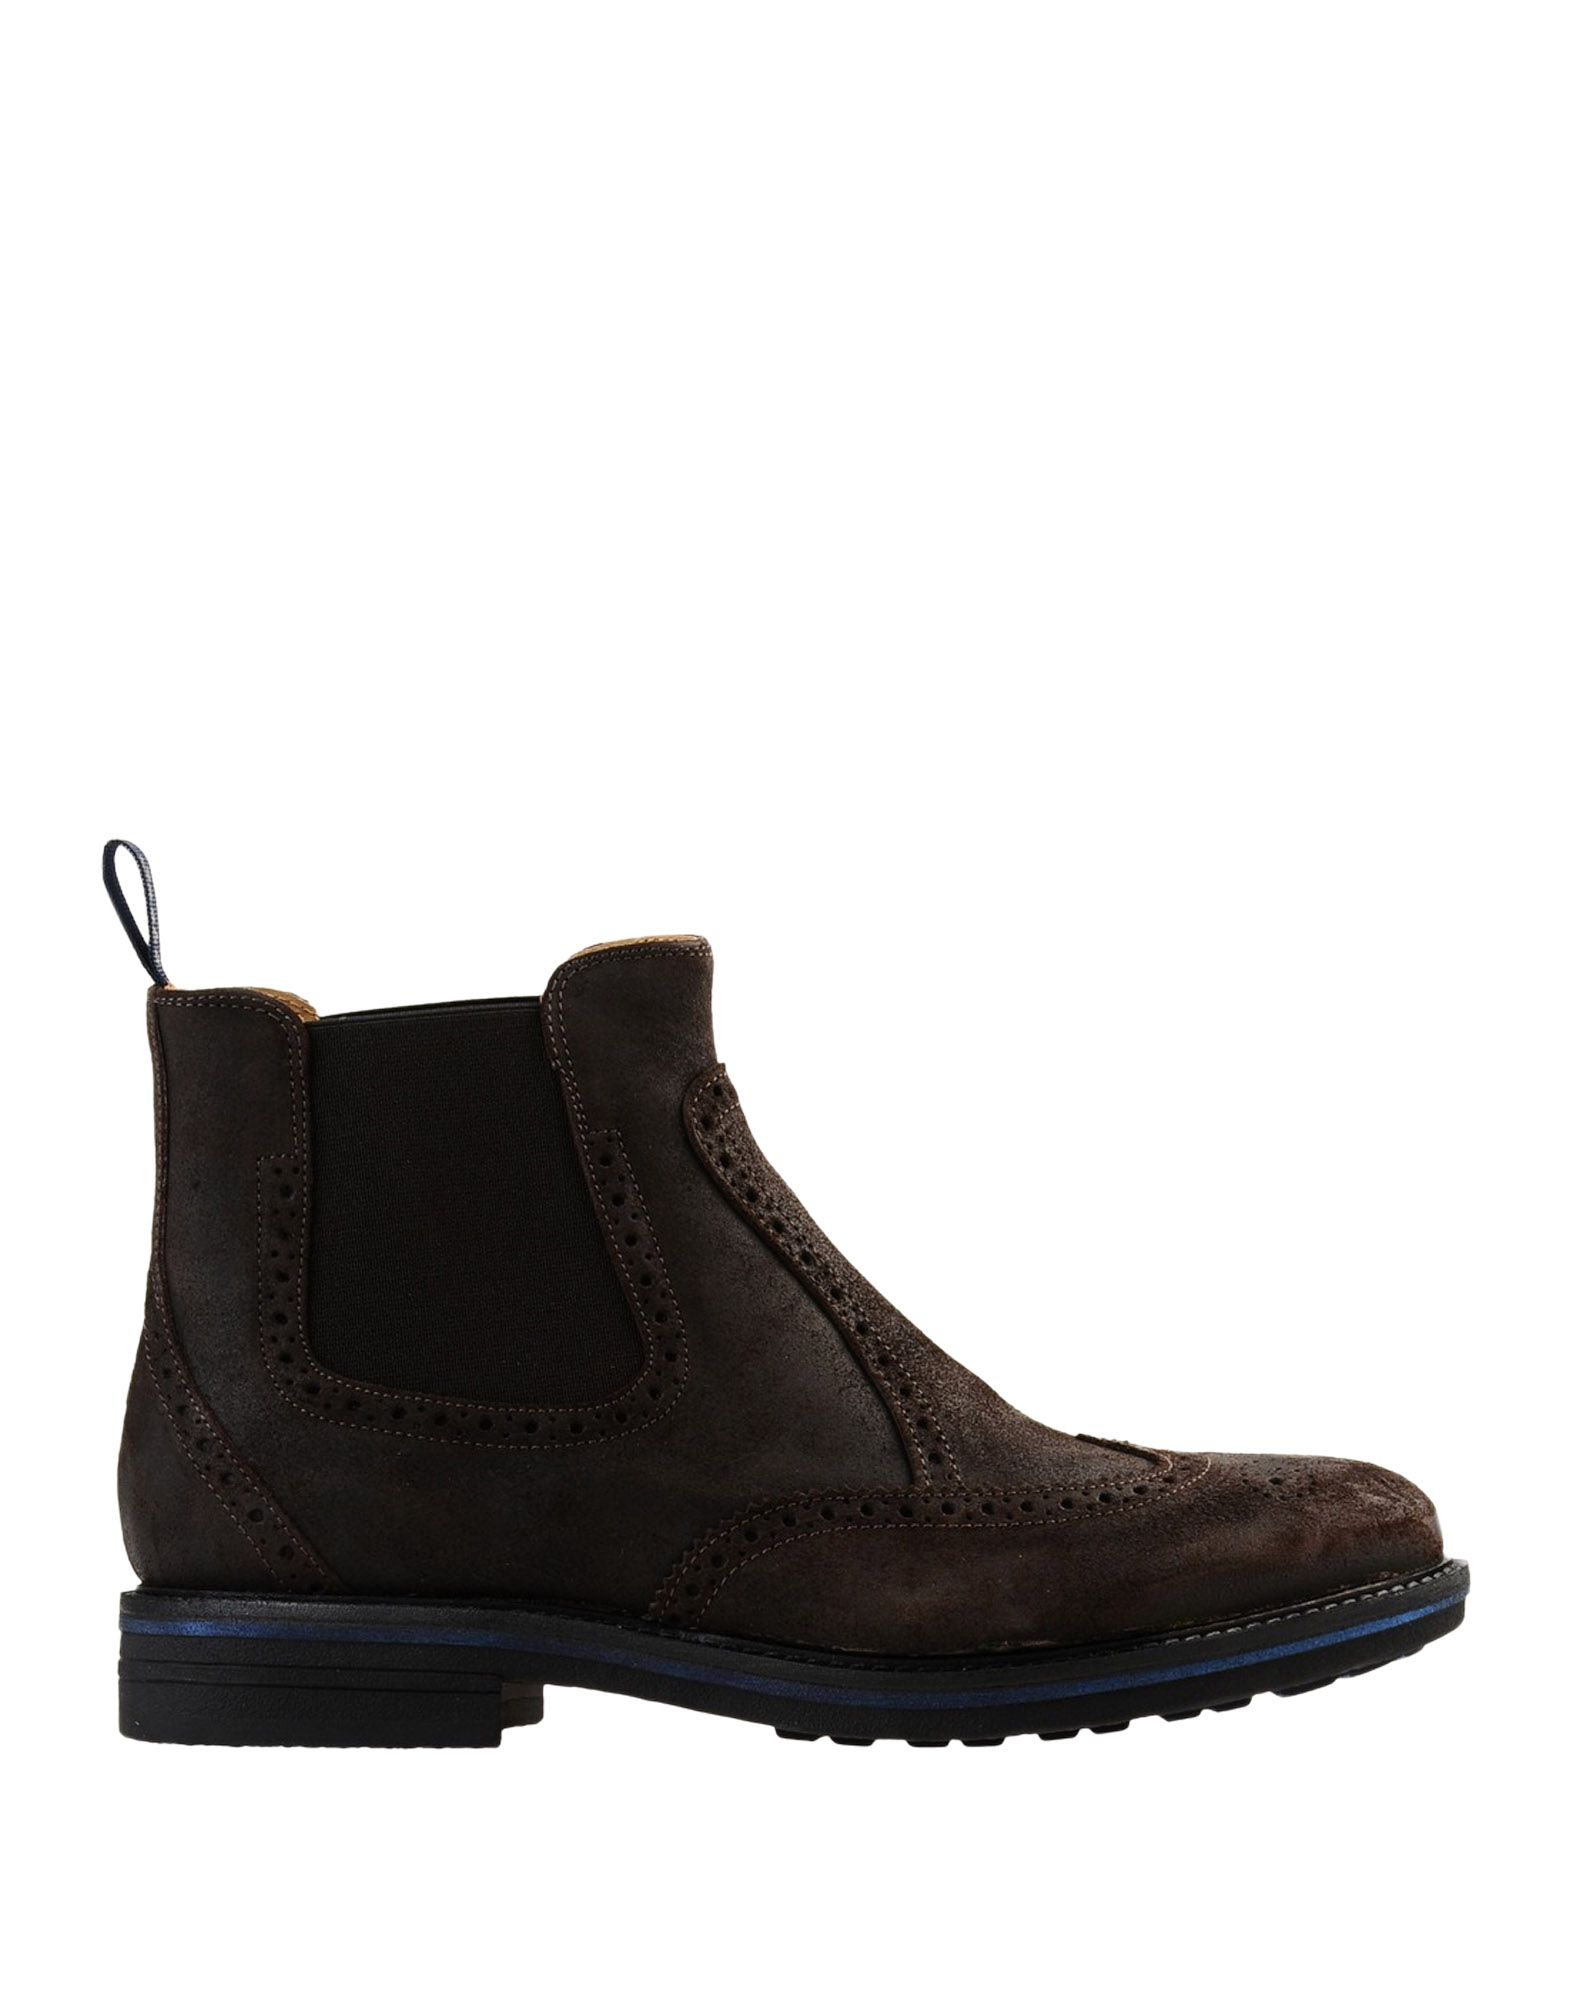 Snobs® Boots - Men Snobs® Boots online on  Canada Canada Canada - 11571048SF 6fc617